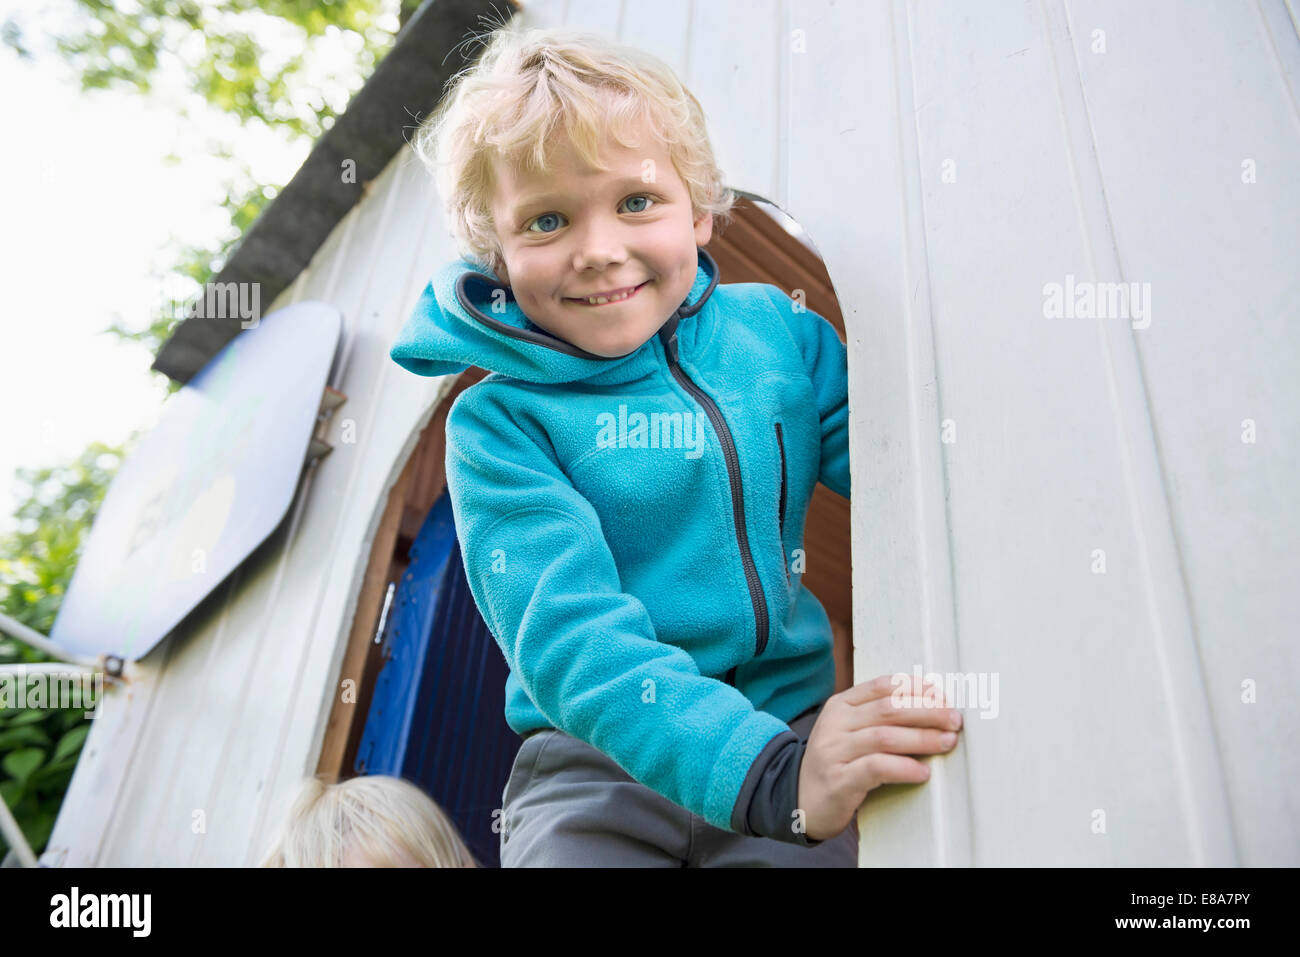 Young blonde boy playing in garden summerhouse - Stock Image